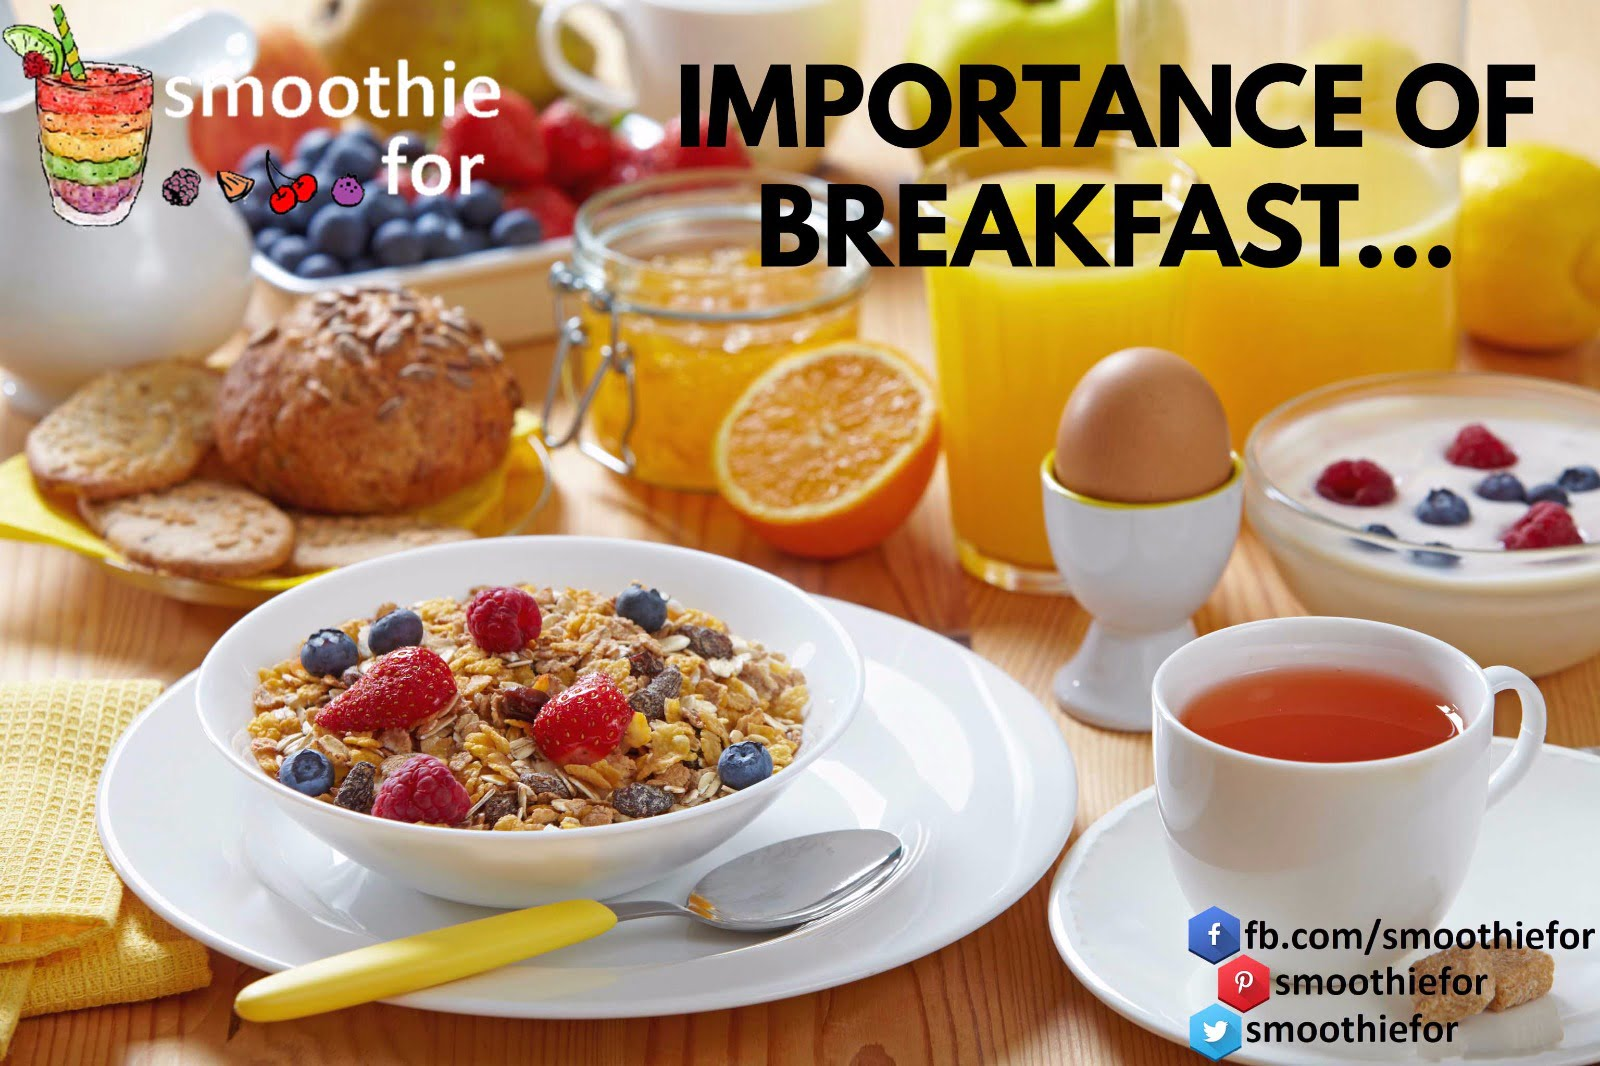 essay breakfast important meal The current debates about breakfast are nothing new the morning meal  time  after time, is the day's most important, declared what many had  she wrote that  in an essay about her failed attempt to enjoy pre-noon eating.